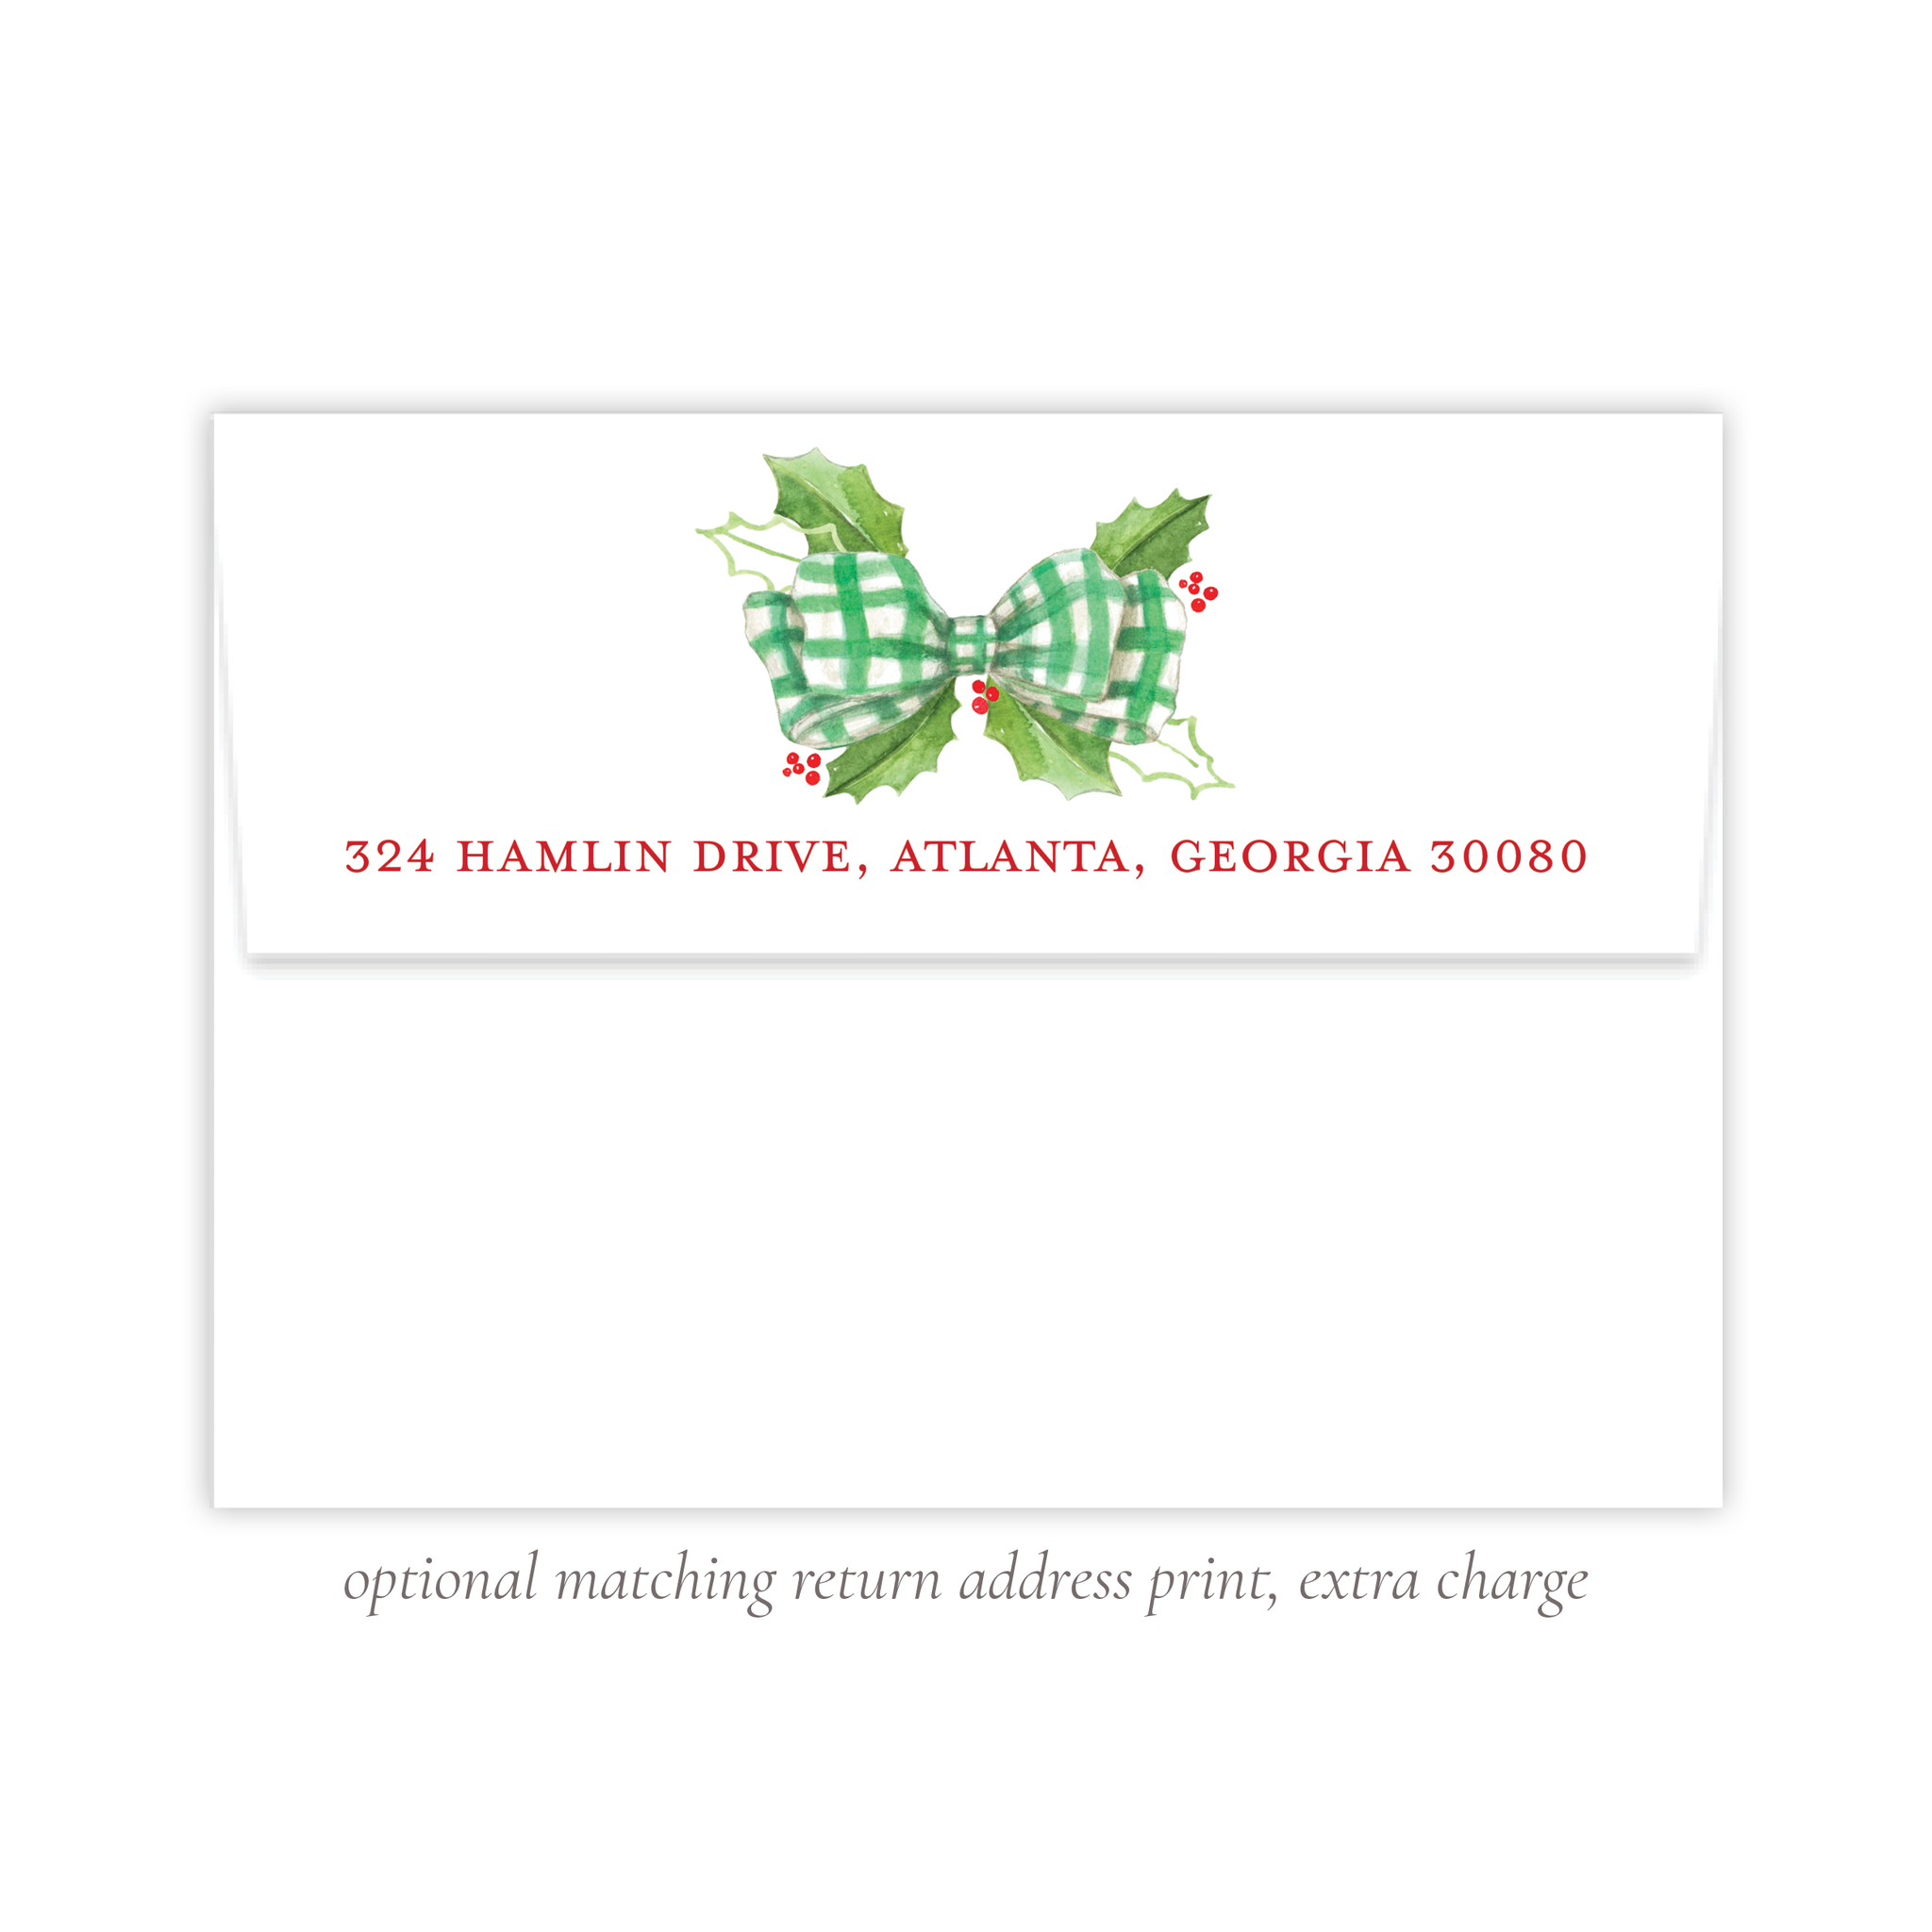 Windsor Winter Green Return Address Print